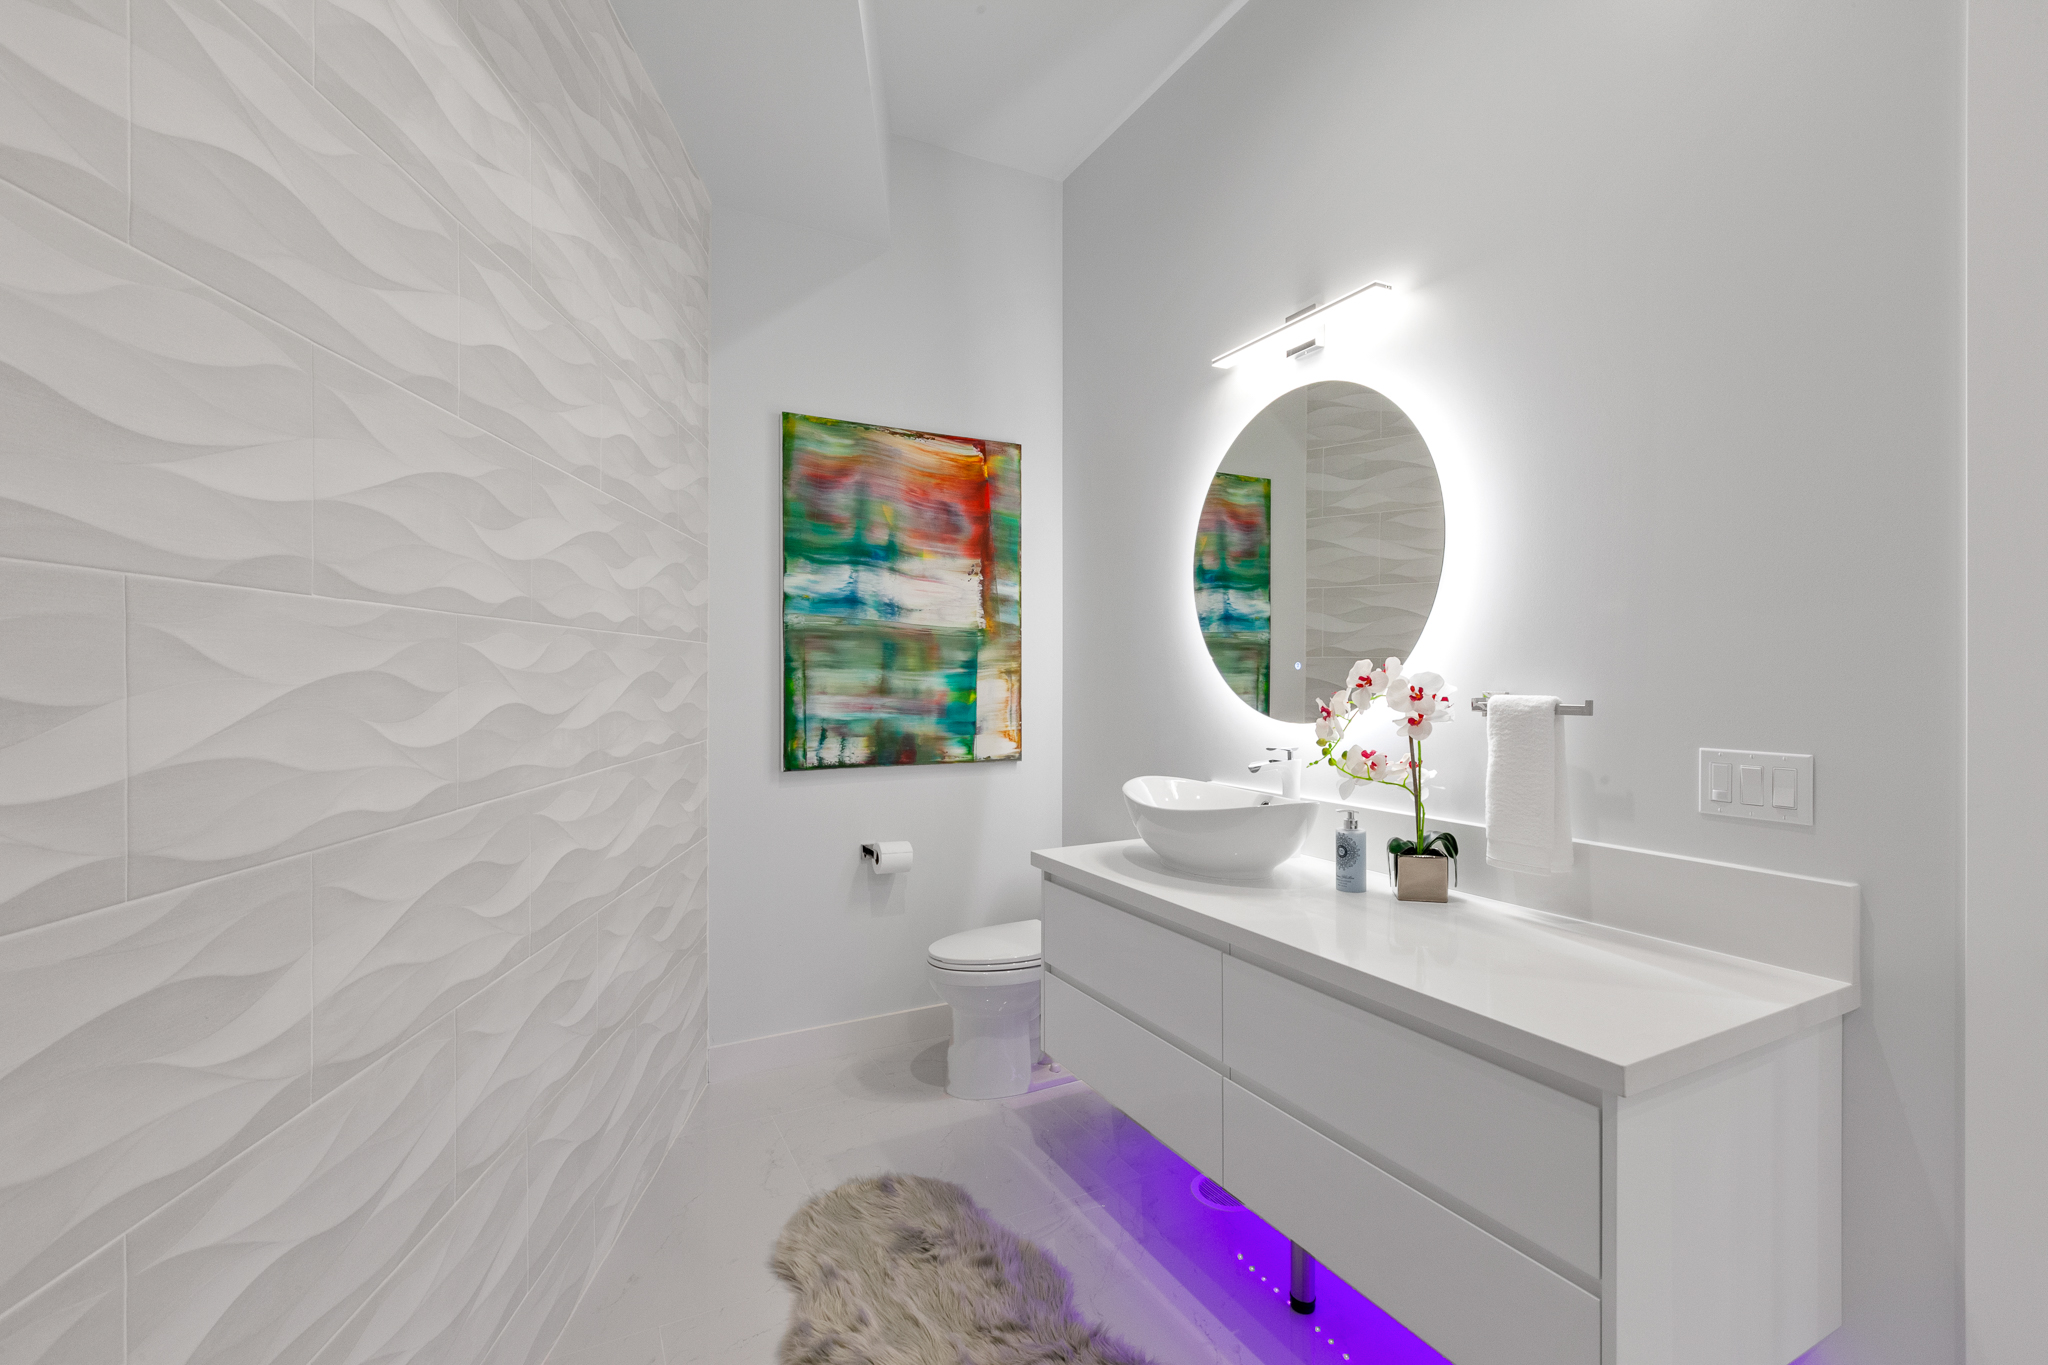 Bathroom - Luxury Real Estate - 18109 84th Ave W, Edmonds